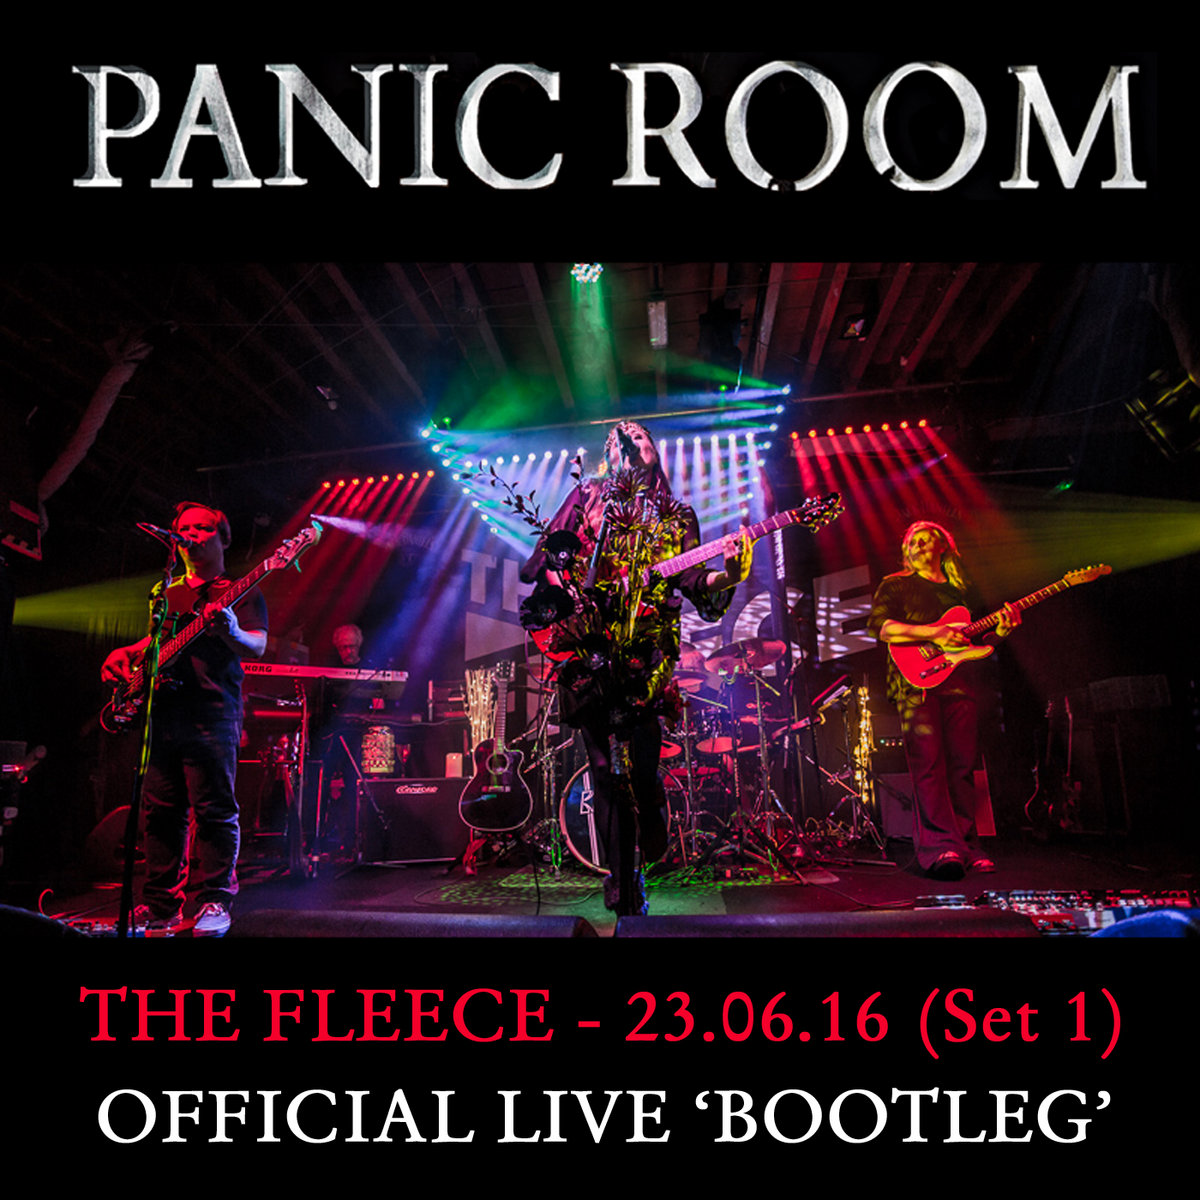 Superior From Live At The Fleece   Official Bootleg   Set 1 (23 . 06 . 2016) By  PANIC ROOM Part 31